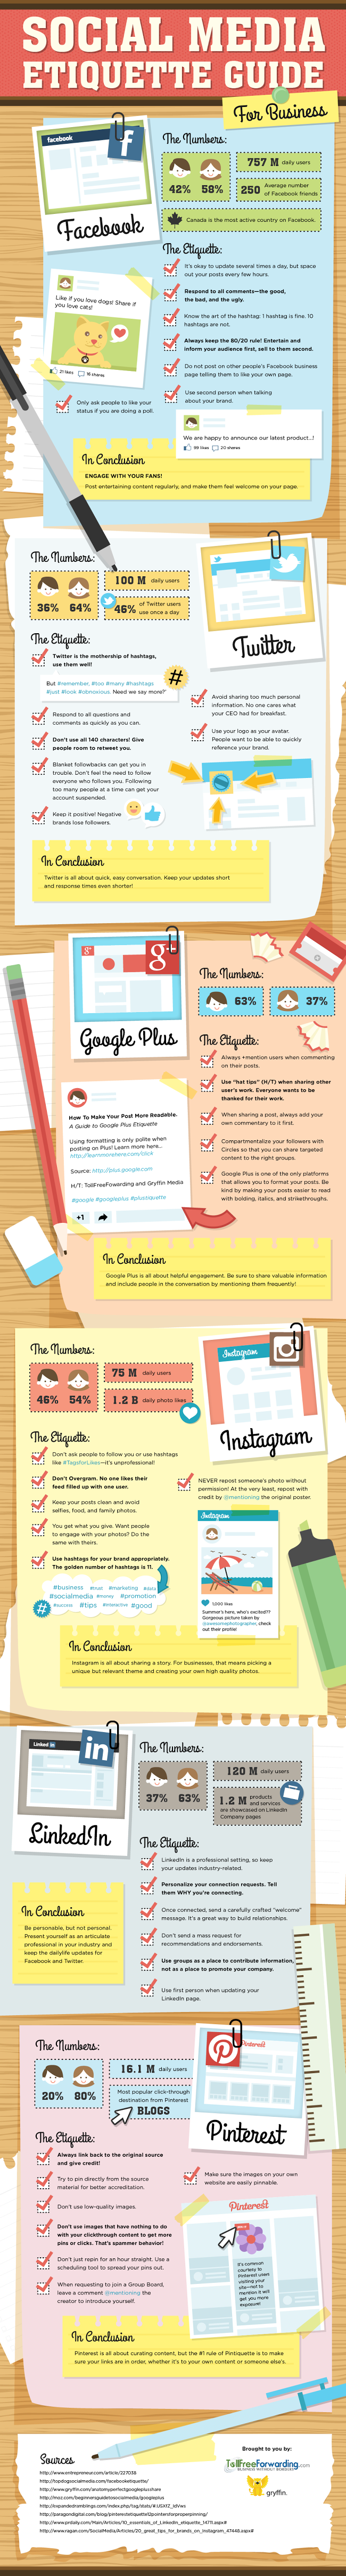 Your complete social media etiquette guide [infographic] by  http://tollfreeforwarding.com